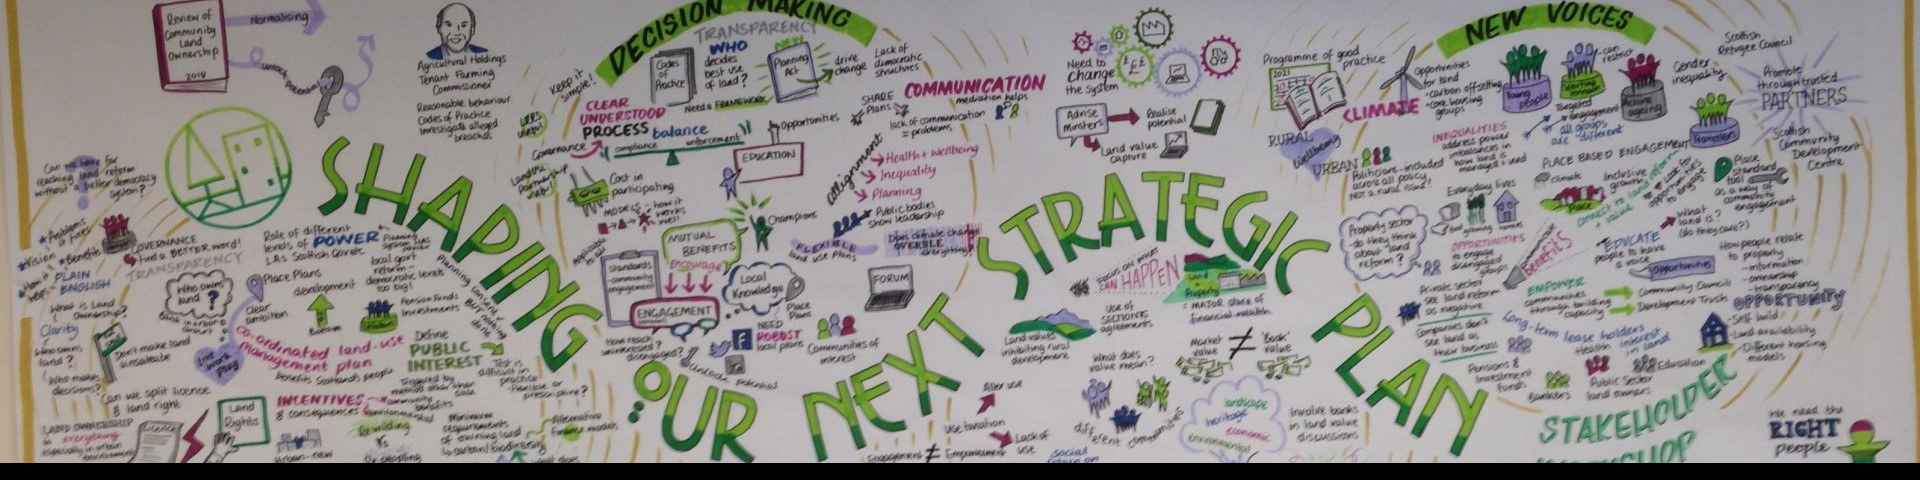 Infographic capturing stakeholder workshop feedback